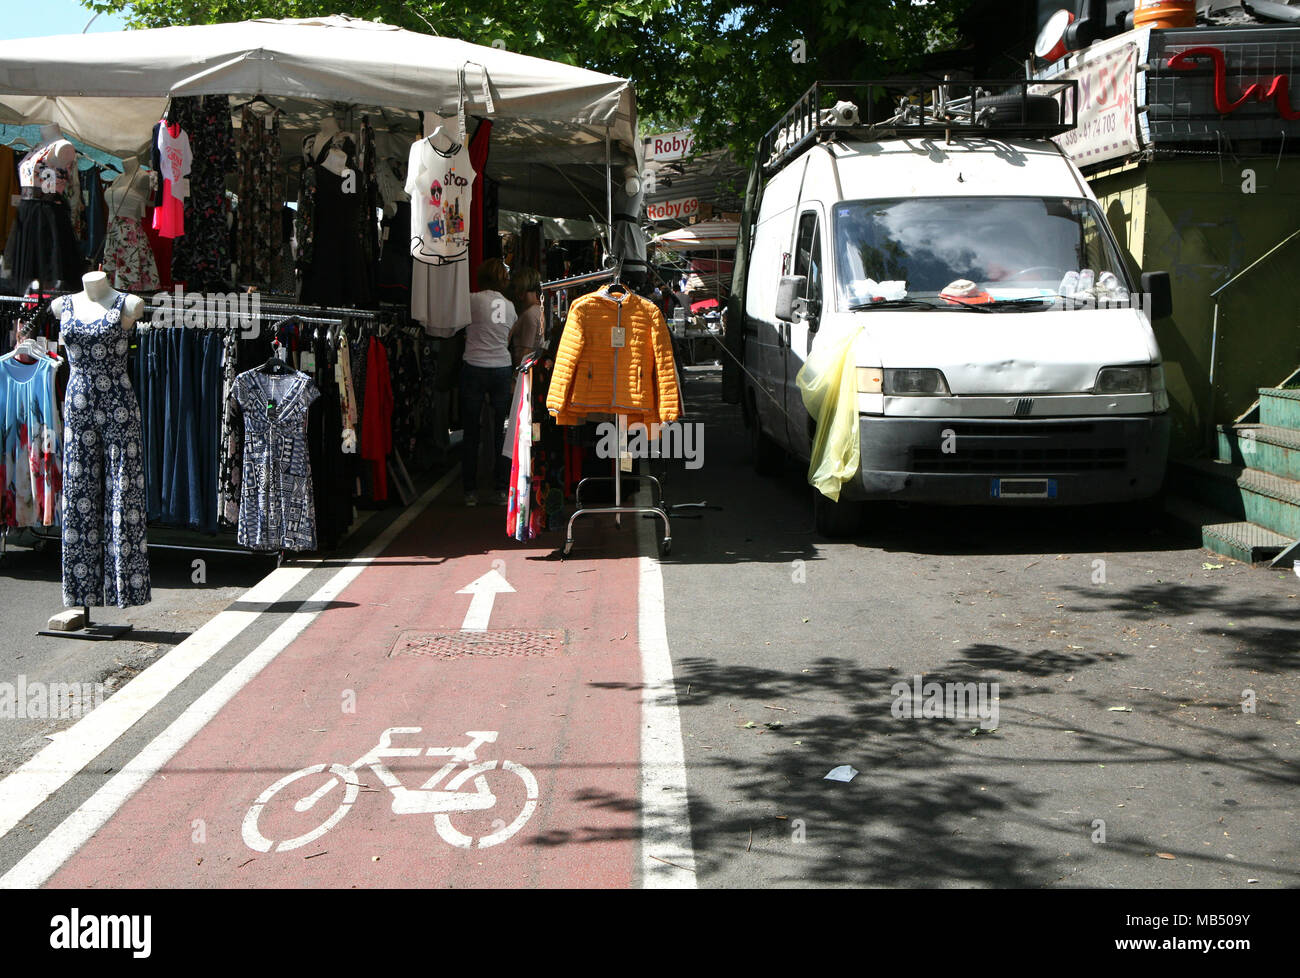 Flee market in the bike lane Porta Portese Rome, Italy - Stock Image